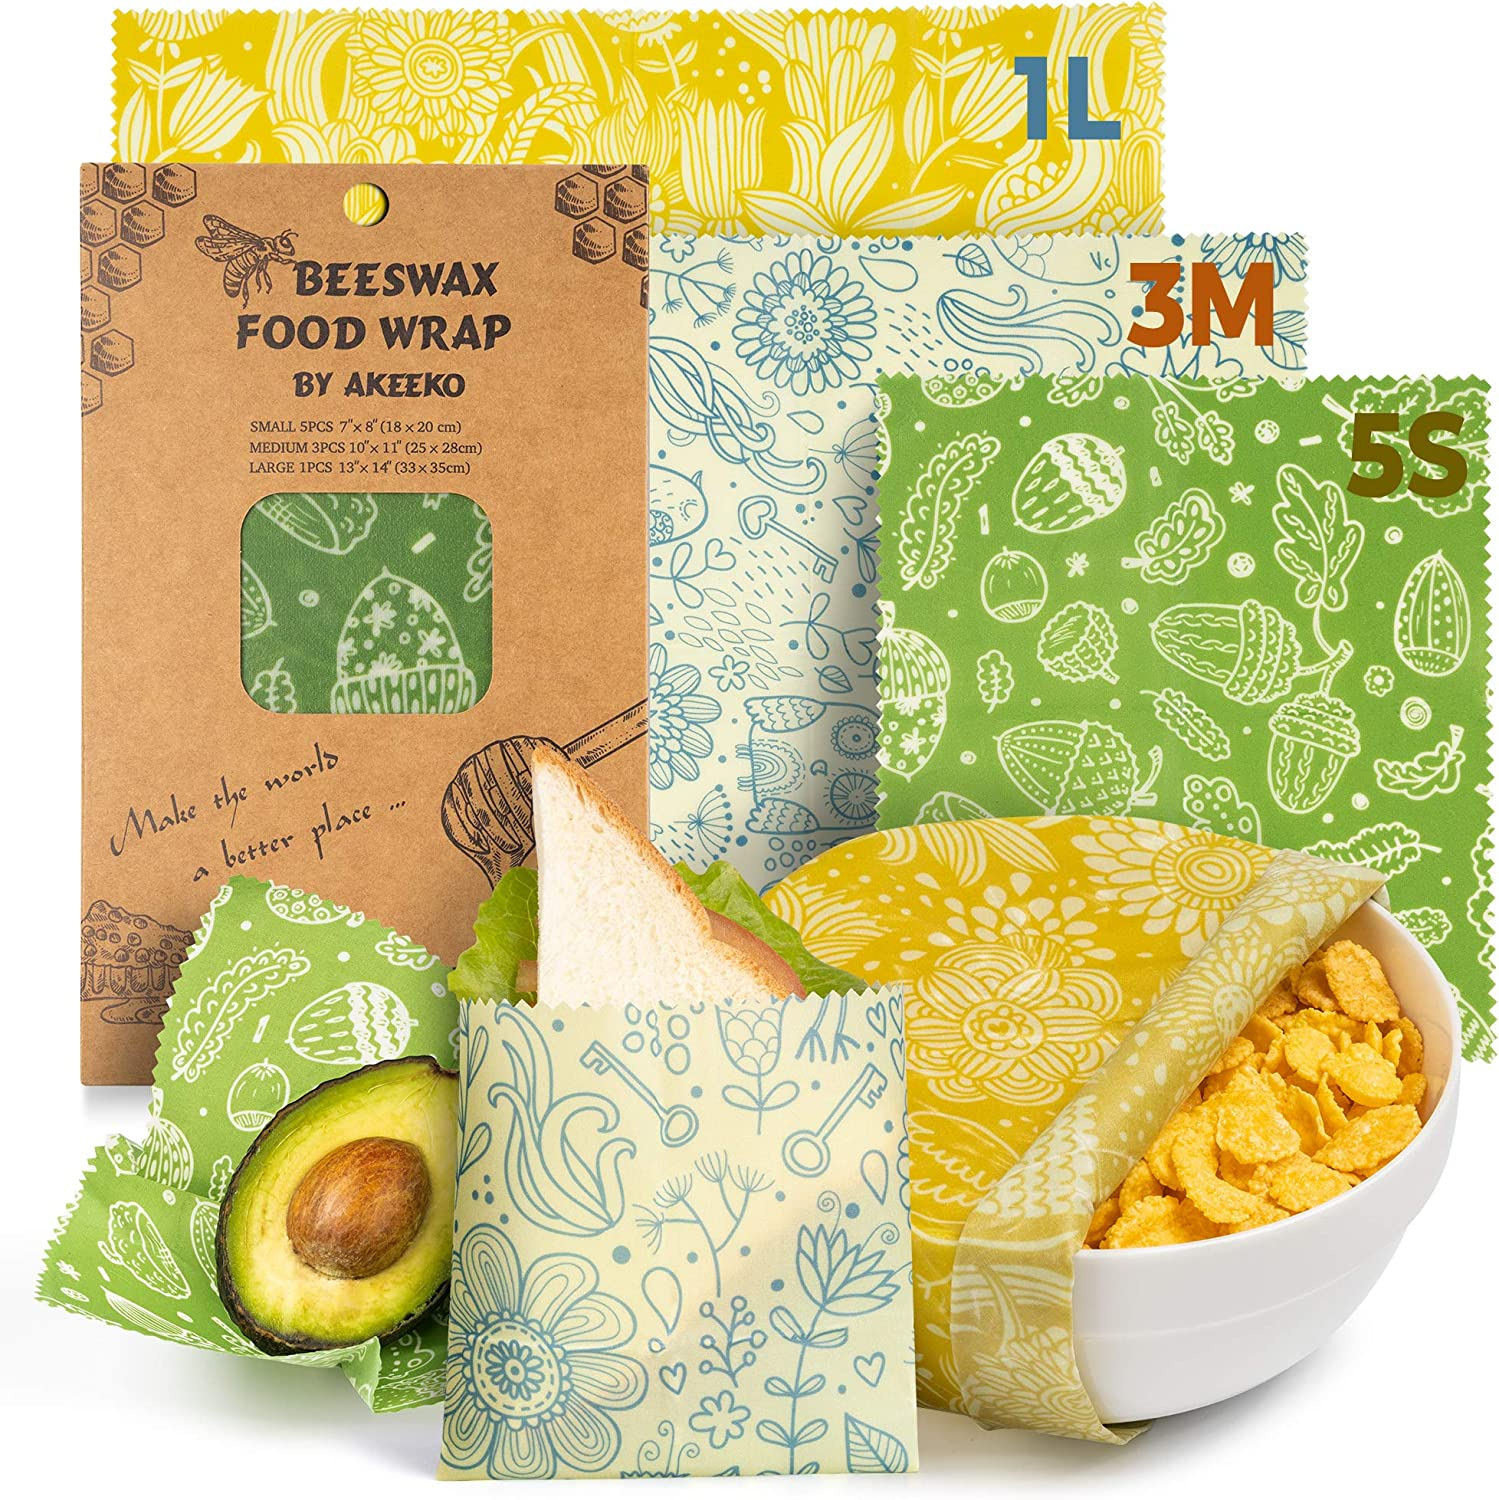 Reusable Beeswax Wraps Assorted 9 Packs - Eco-Friendly Reusable Food Wraps, Biodegradable, Zero Waste, Organic, Sustainable Bees Wax, Plastic-Free Food Storage, 5 Small, 3 Medium, 1 Large